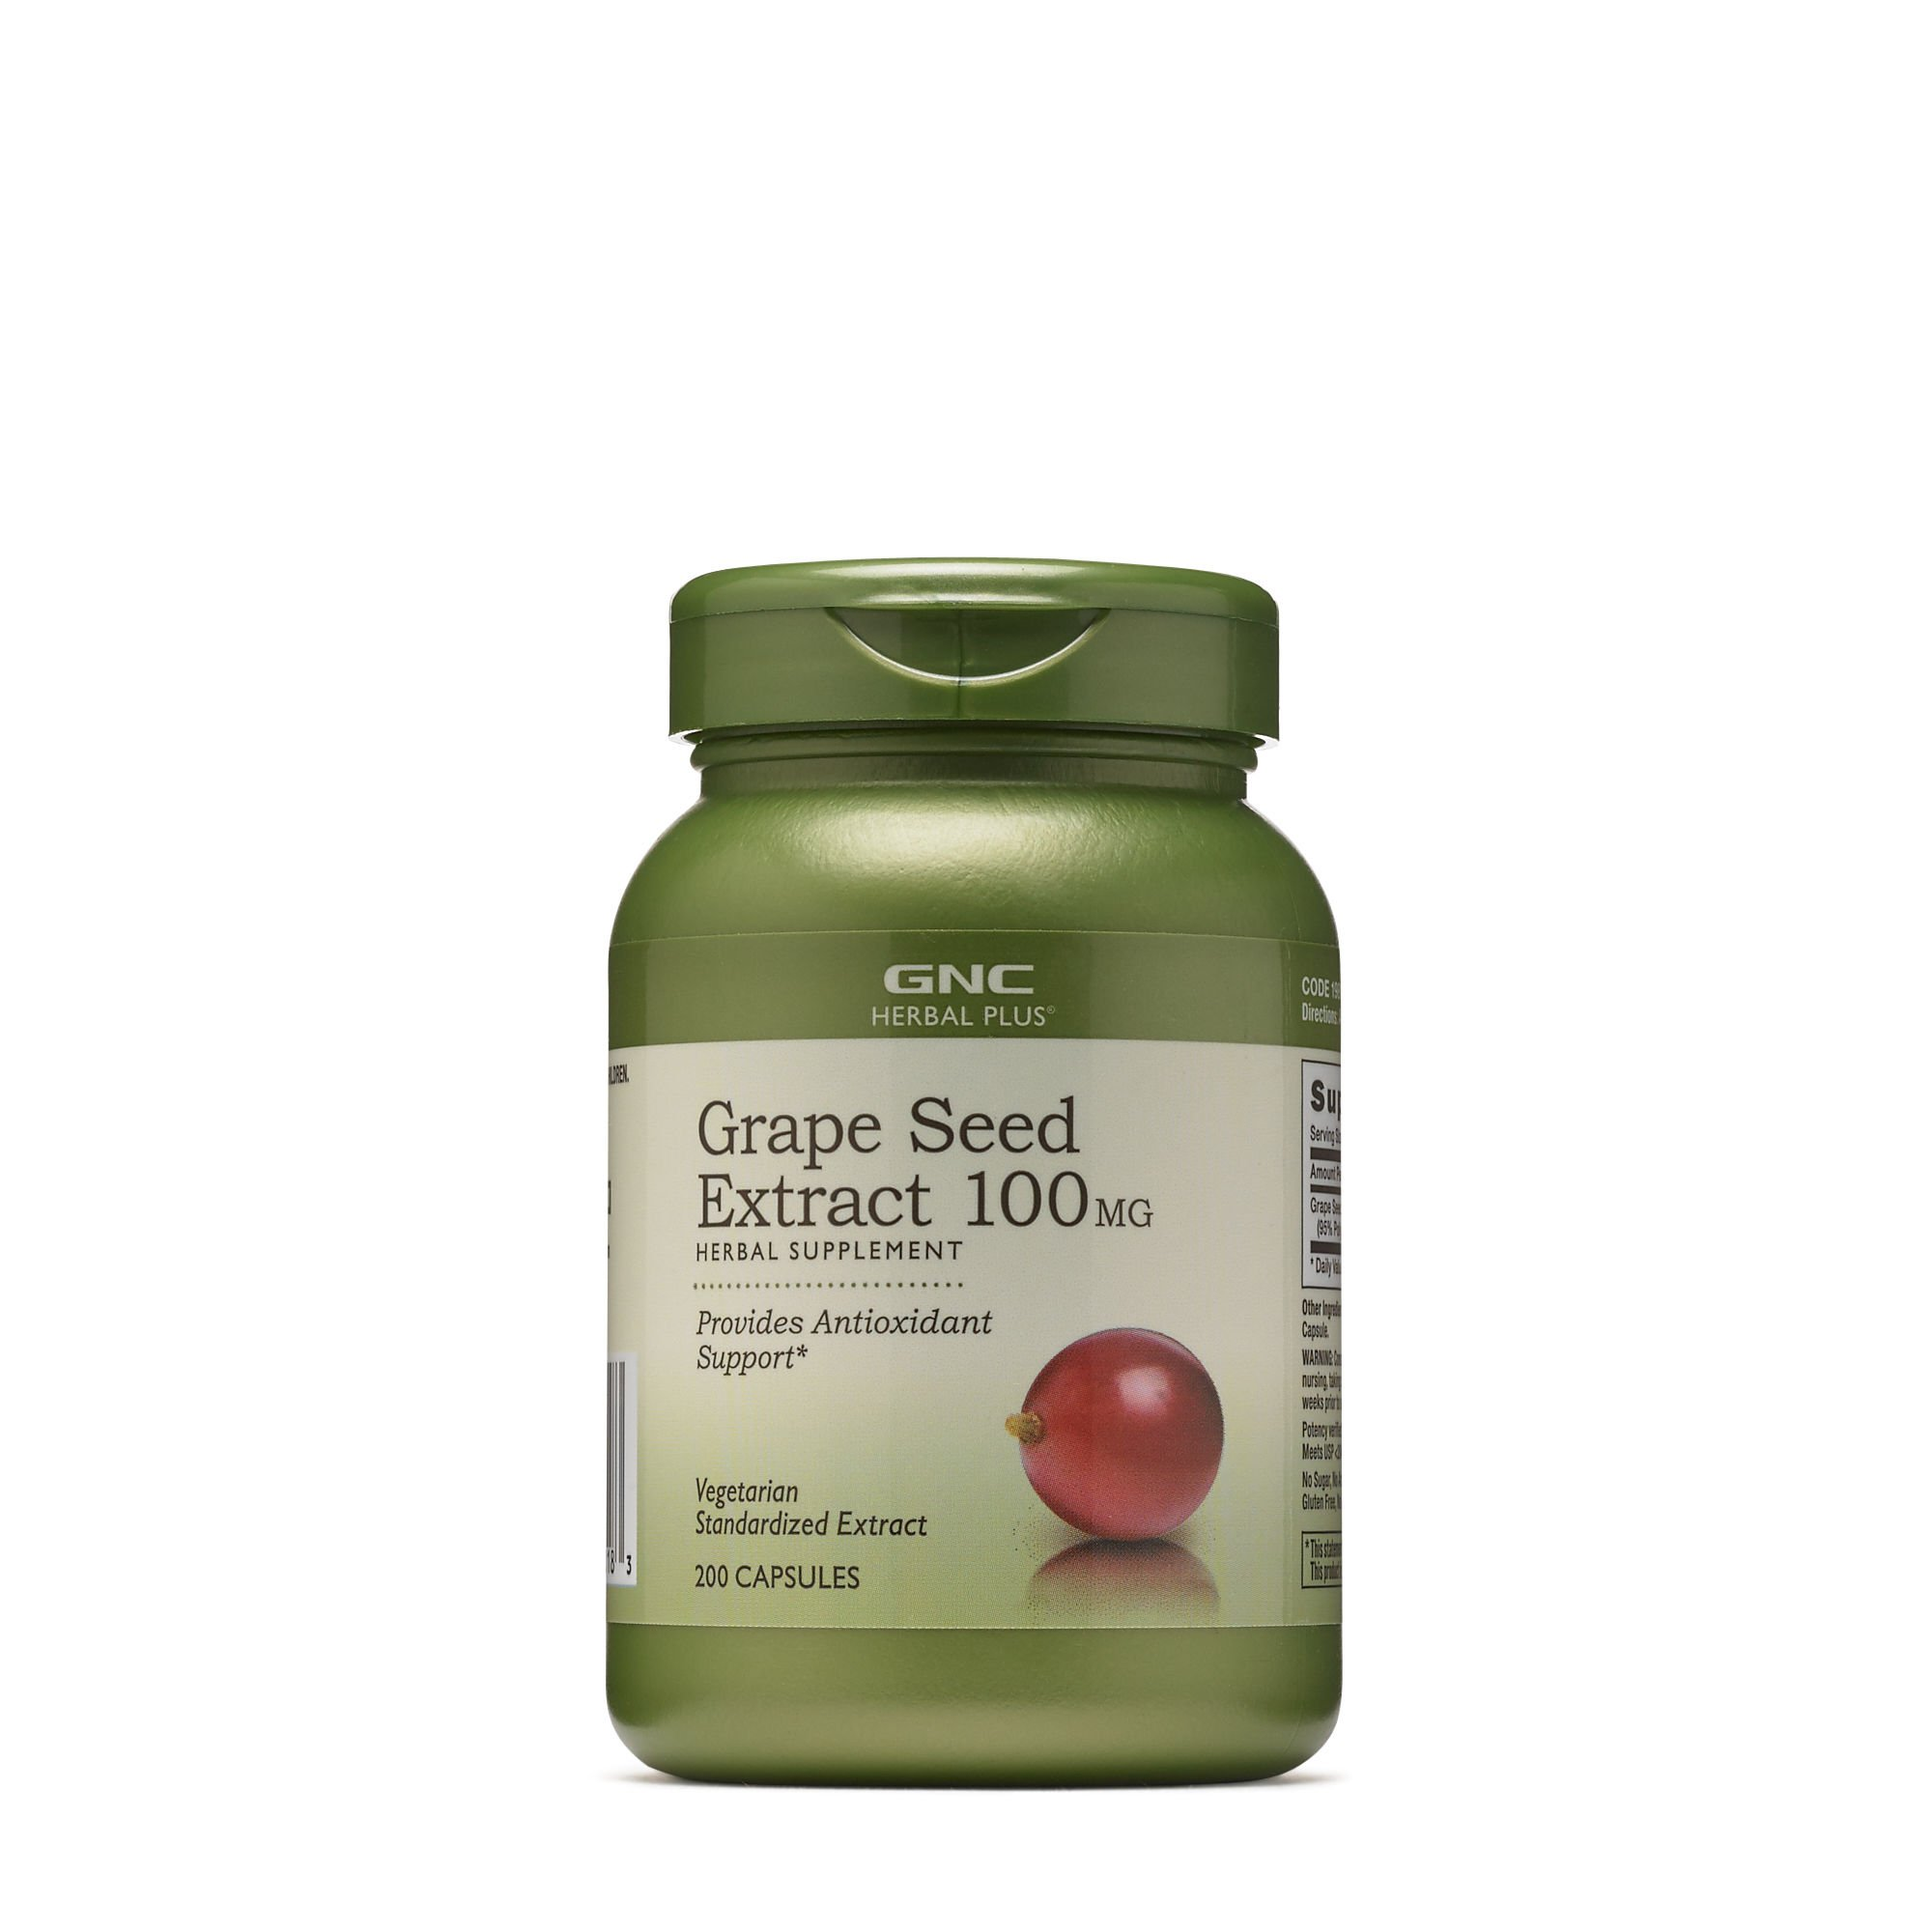 GNC Herbal Plus Grape Seed Extract 100mg, 200 Capsules, Provides Antioxidant Support